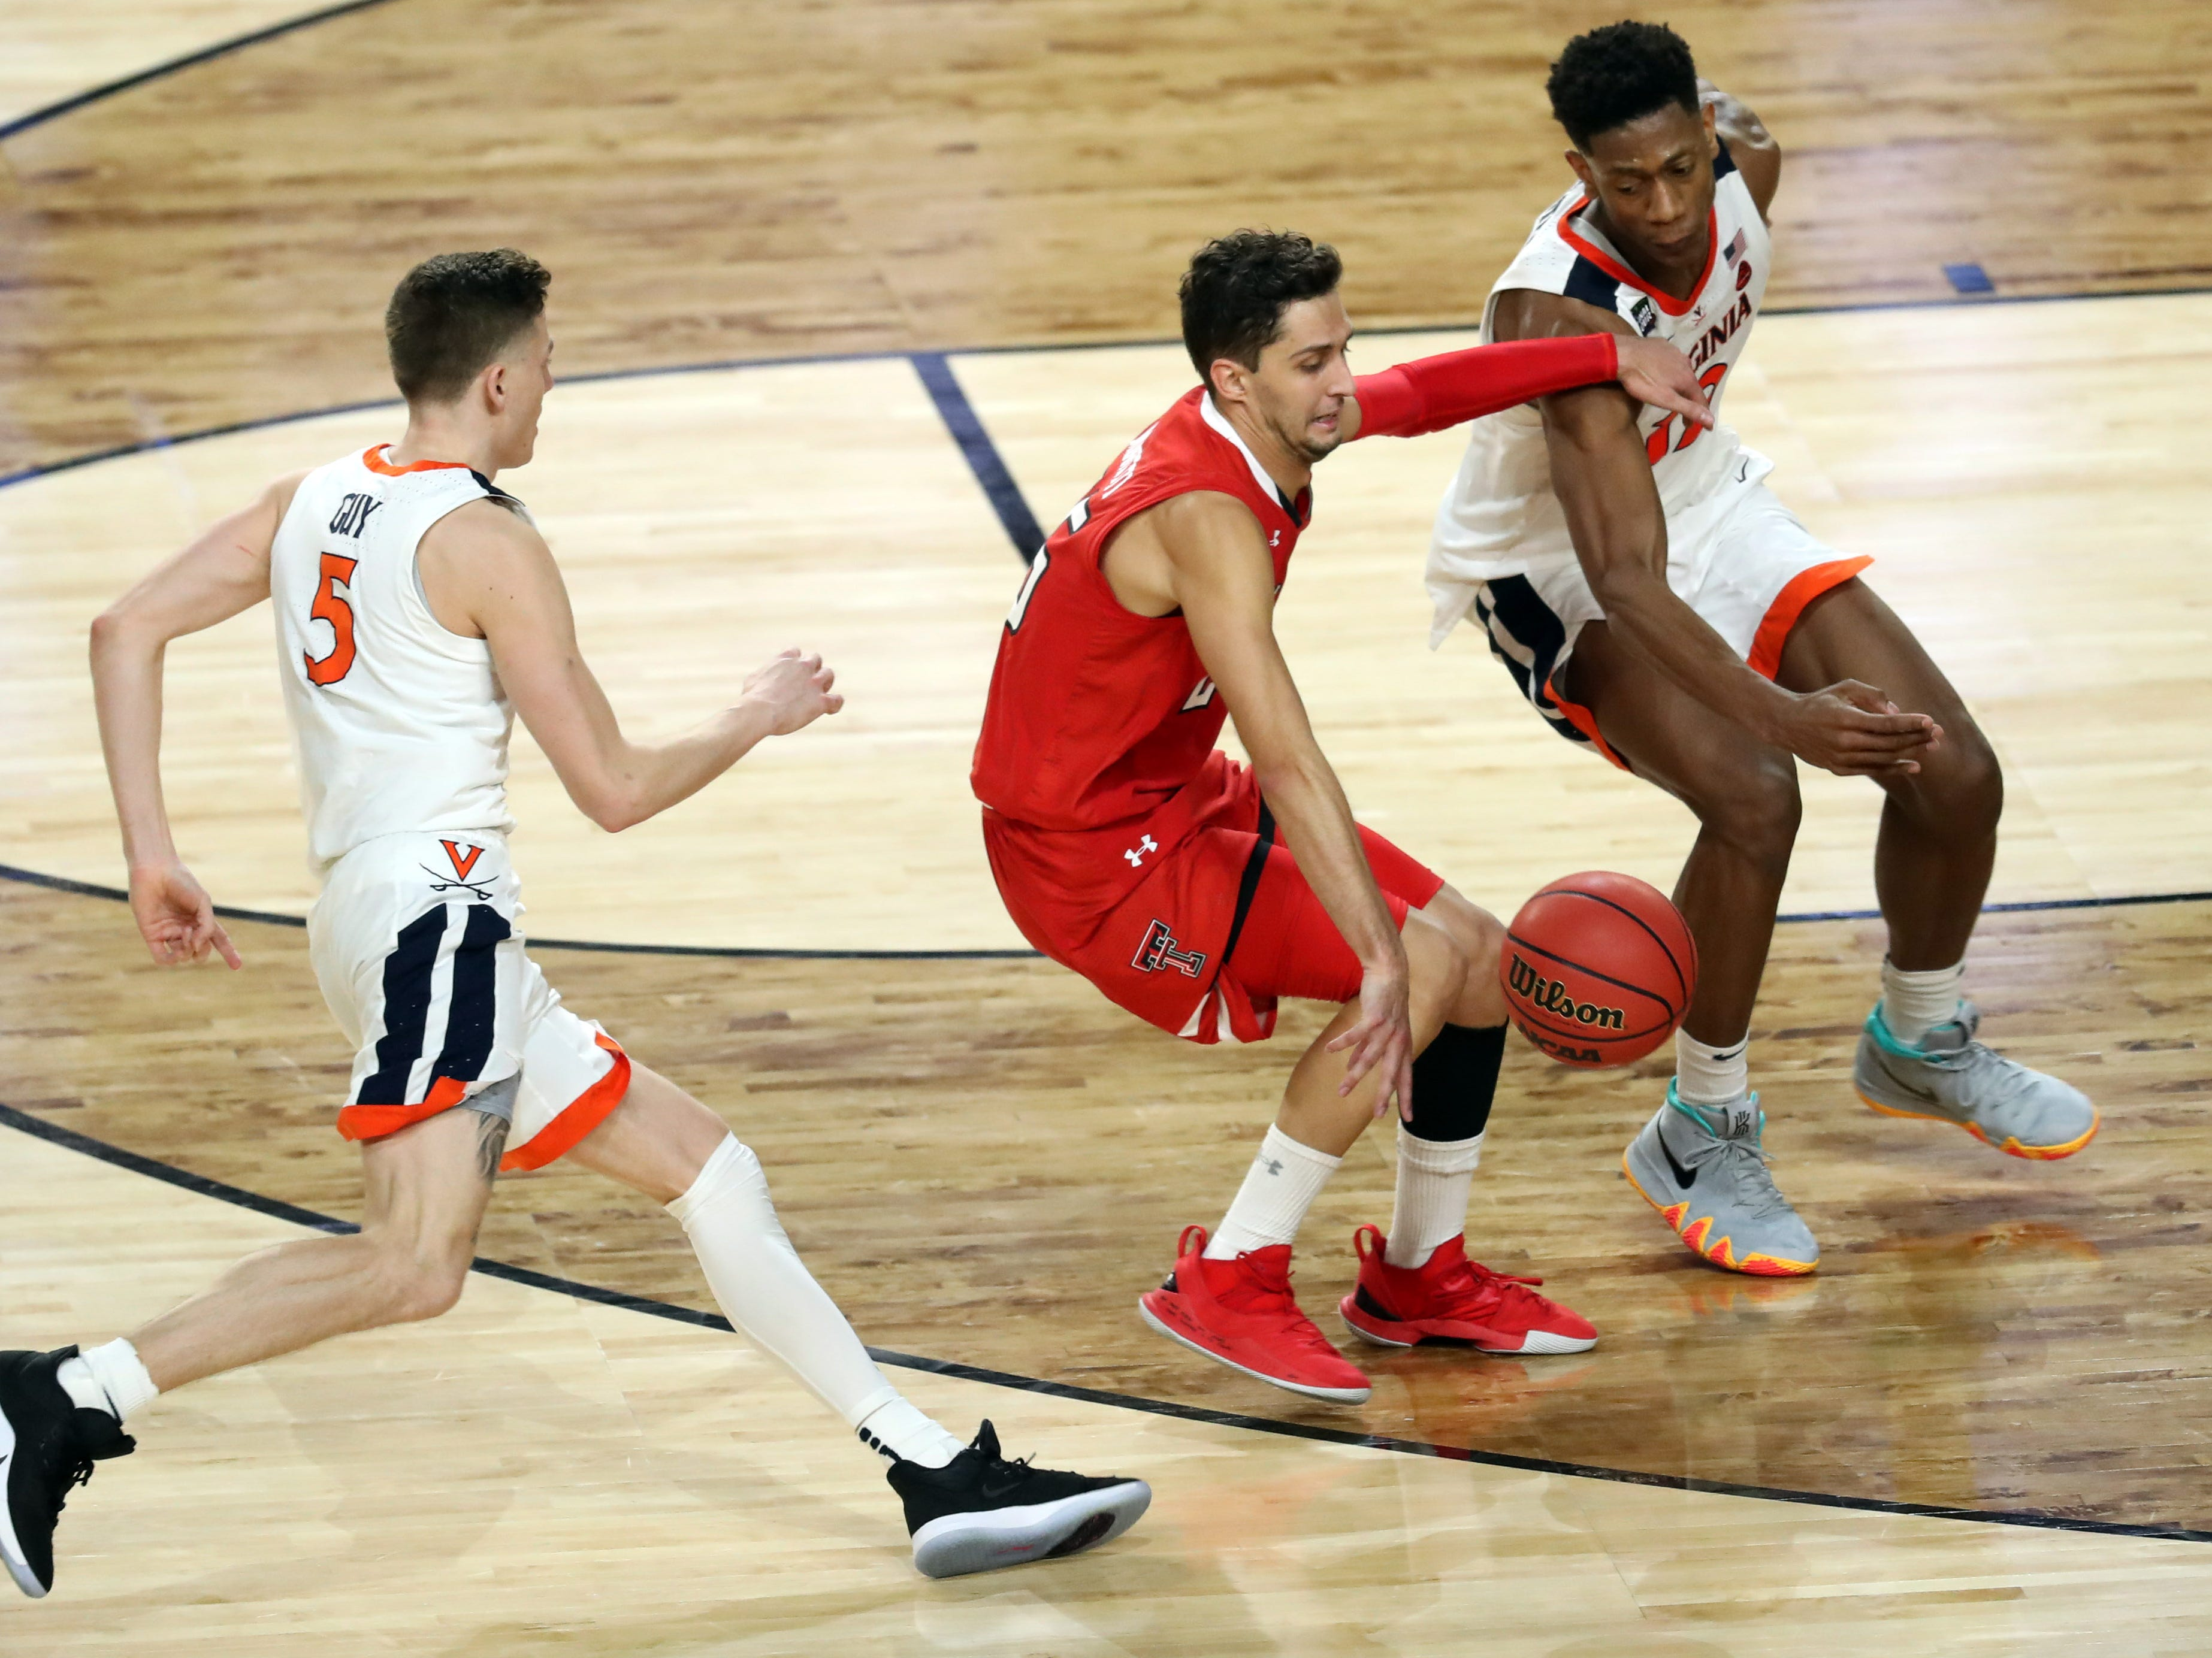 Apr 8, 2019; Minneapolis, MN, USA; Texas Tech Red Raiders guard Davide Moretti (25) drives the ball up the court while pressured by Virginia Cavaliers guard De'Andre Hunter (12) and guard Kyle Guy (5) during the second half in the championship game of the 2019 men's Final Four at US Bank Stadium. Mandatory Credit: Brace Hemmelgarn-USA TODAY Sports